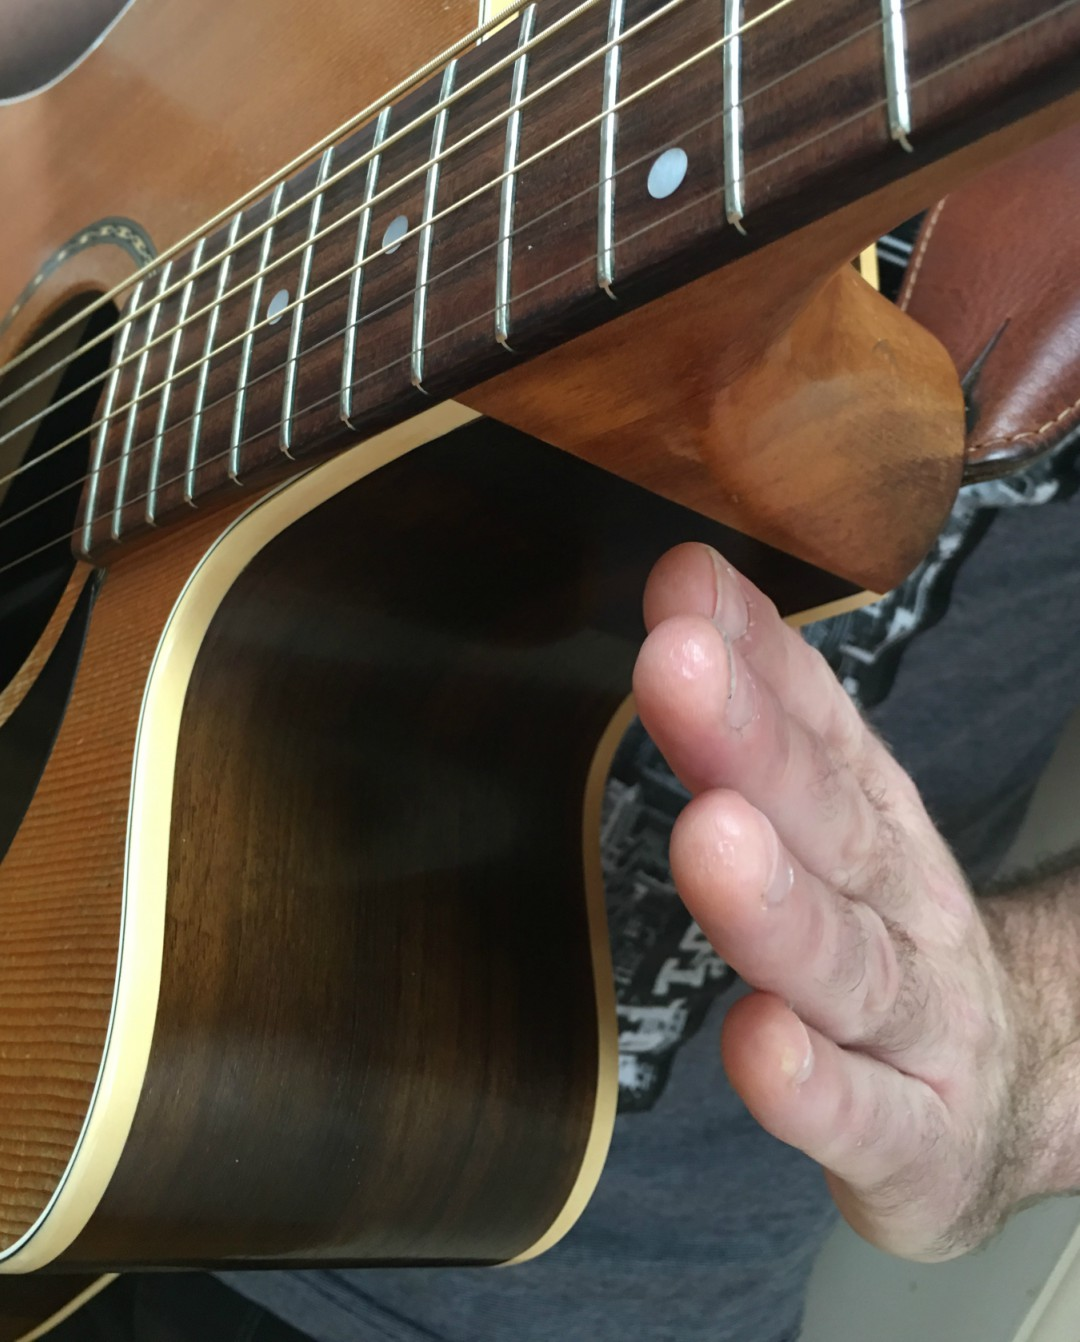 Percussive Guitar Fret Hand Hit